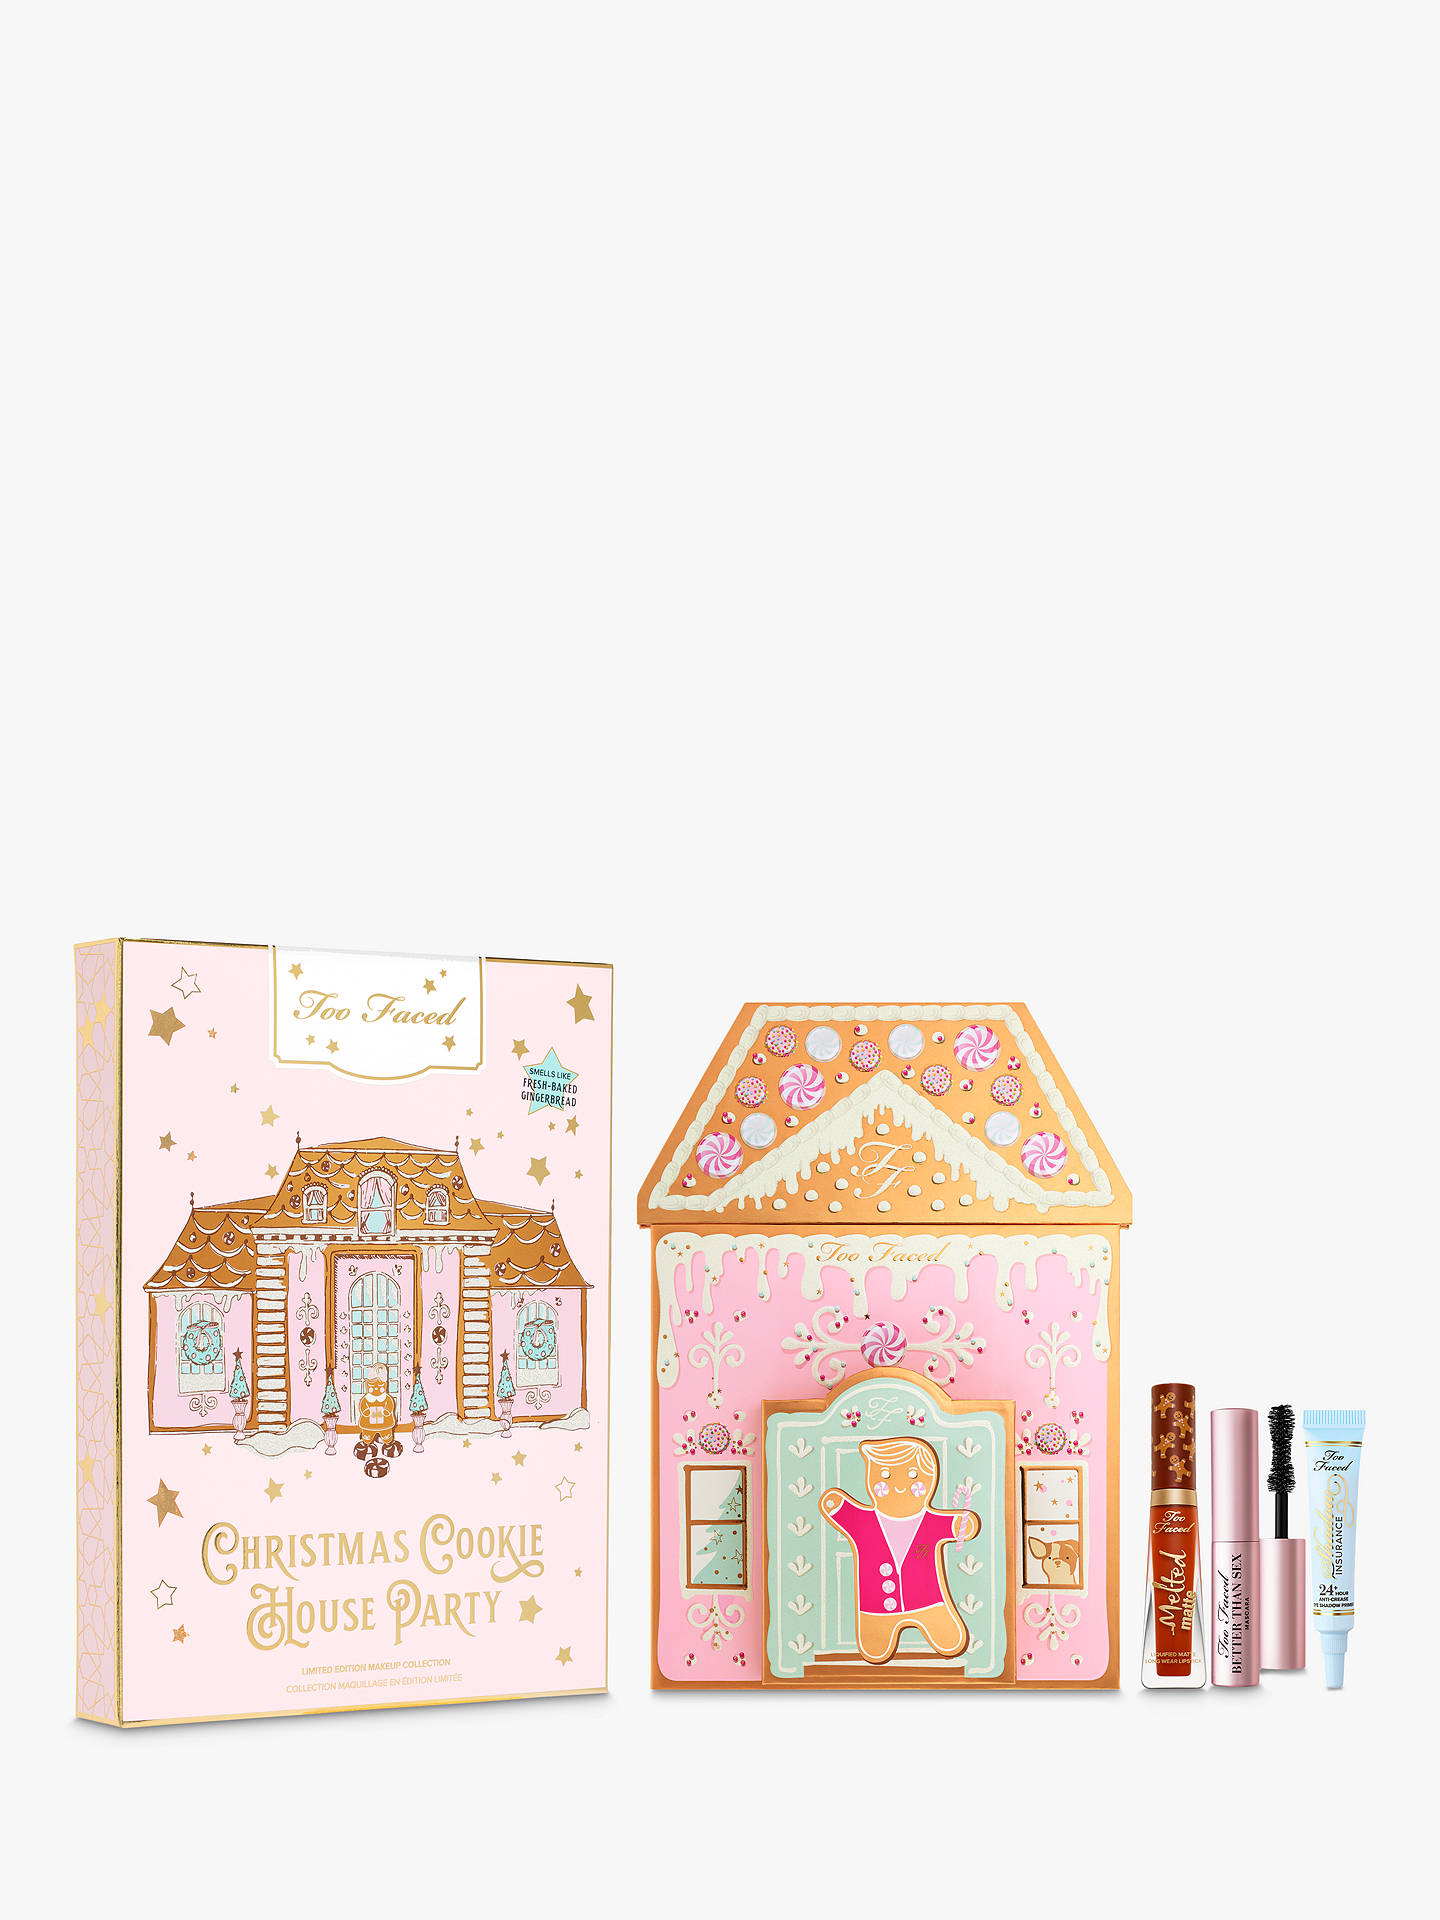 Too Faced Gingerbread House Party Makeup Gift Set by Too Faced